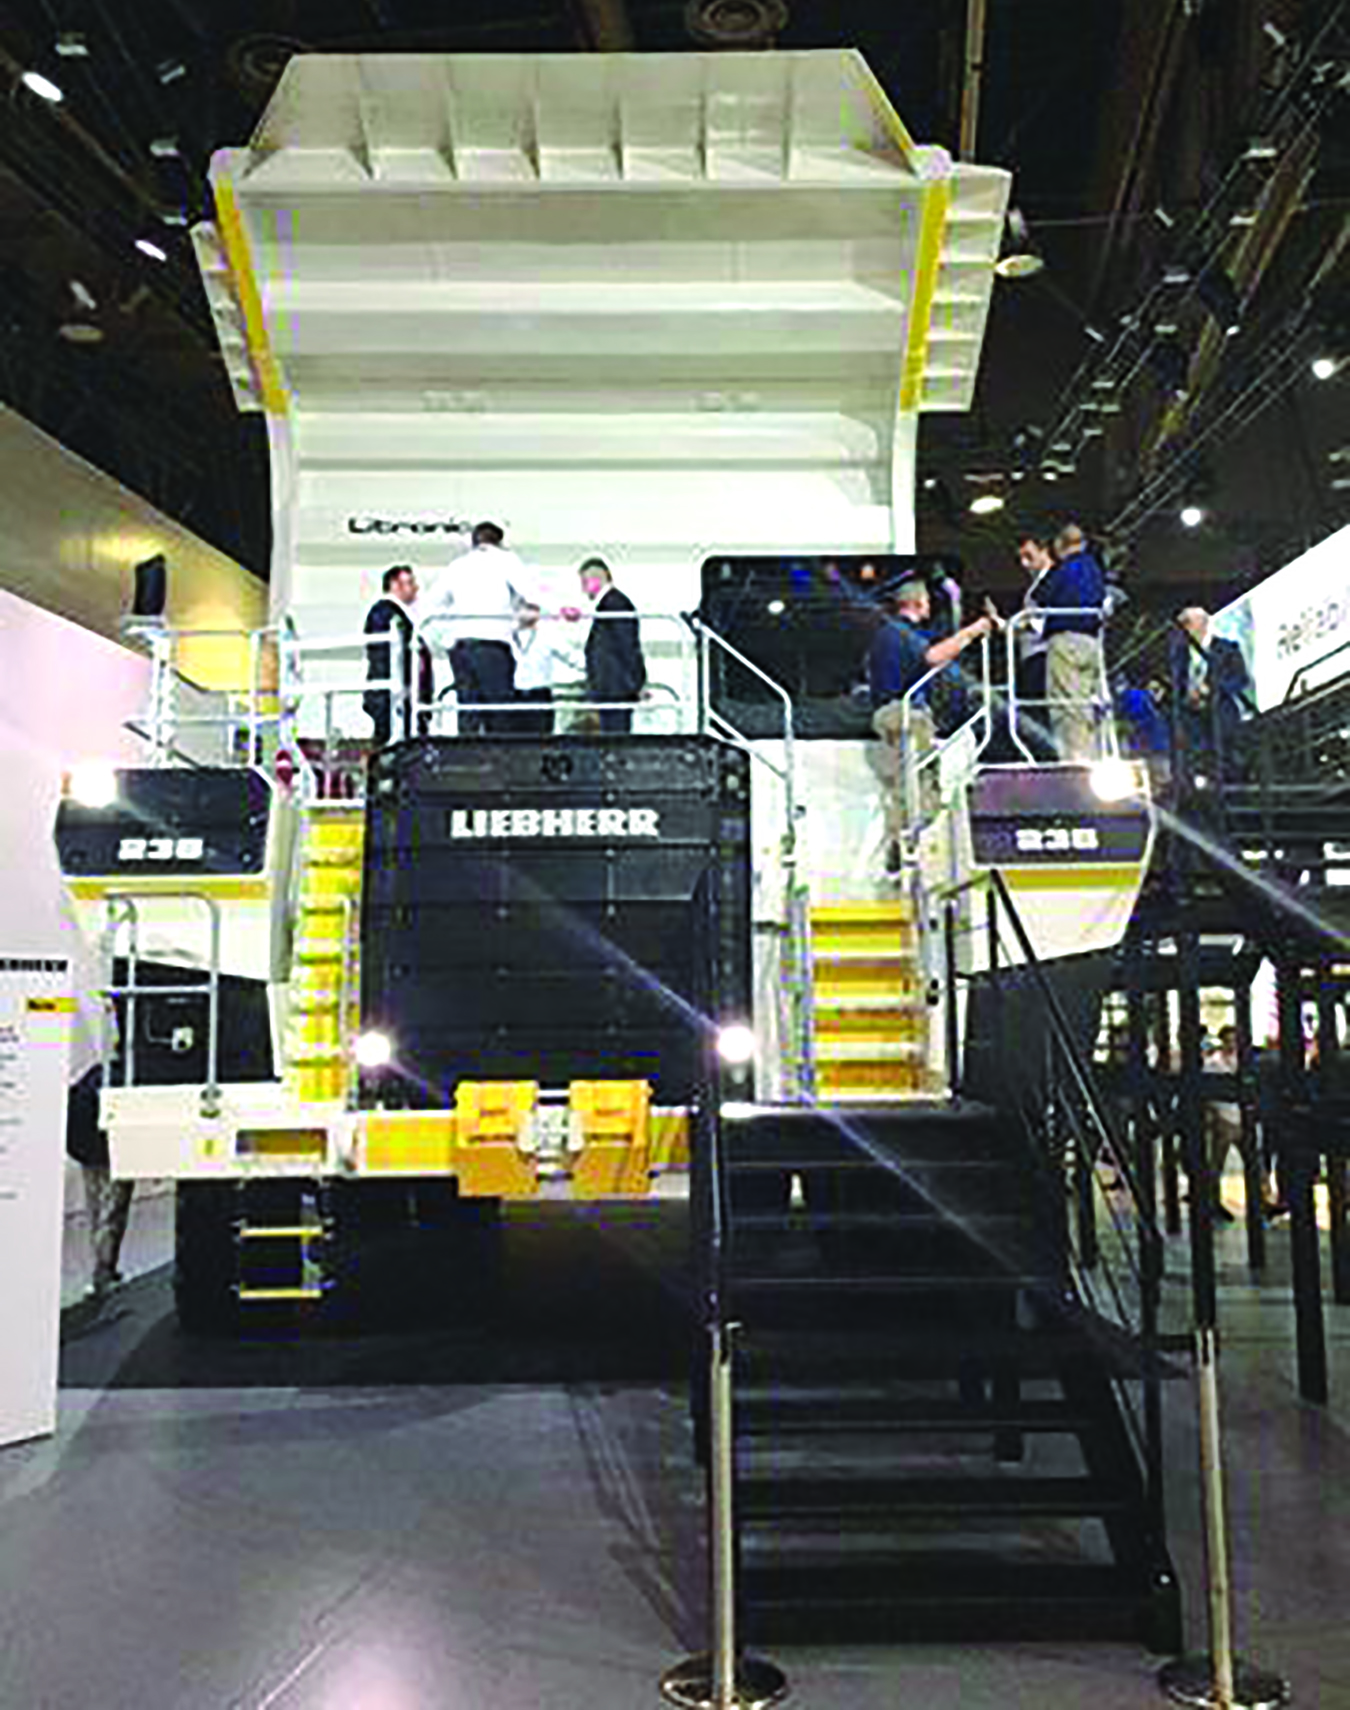 Liebherr says its T 236 is the first diesel electric truck in class to incorporate an oil-immersed braking system with four-corner retarding capabilities.